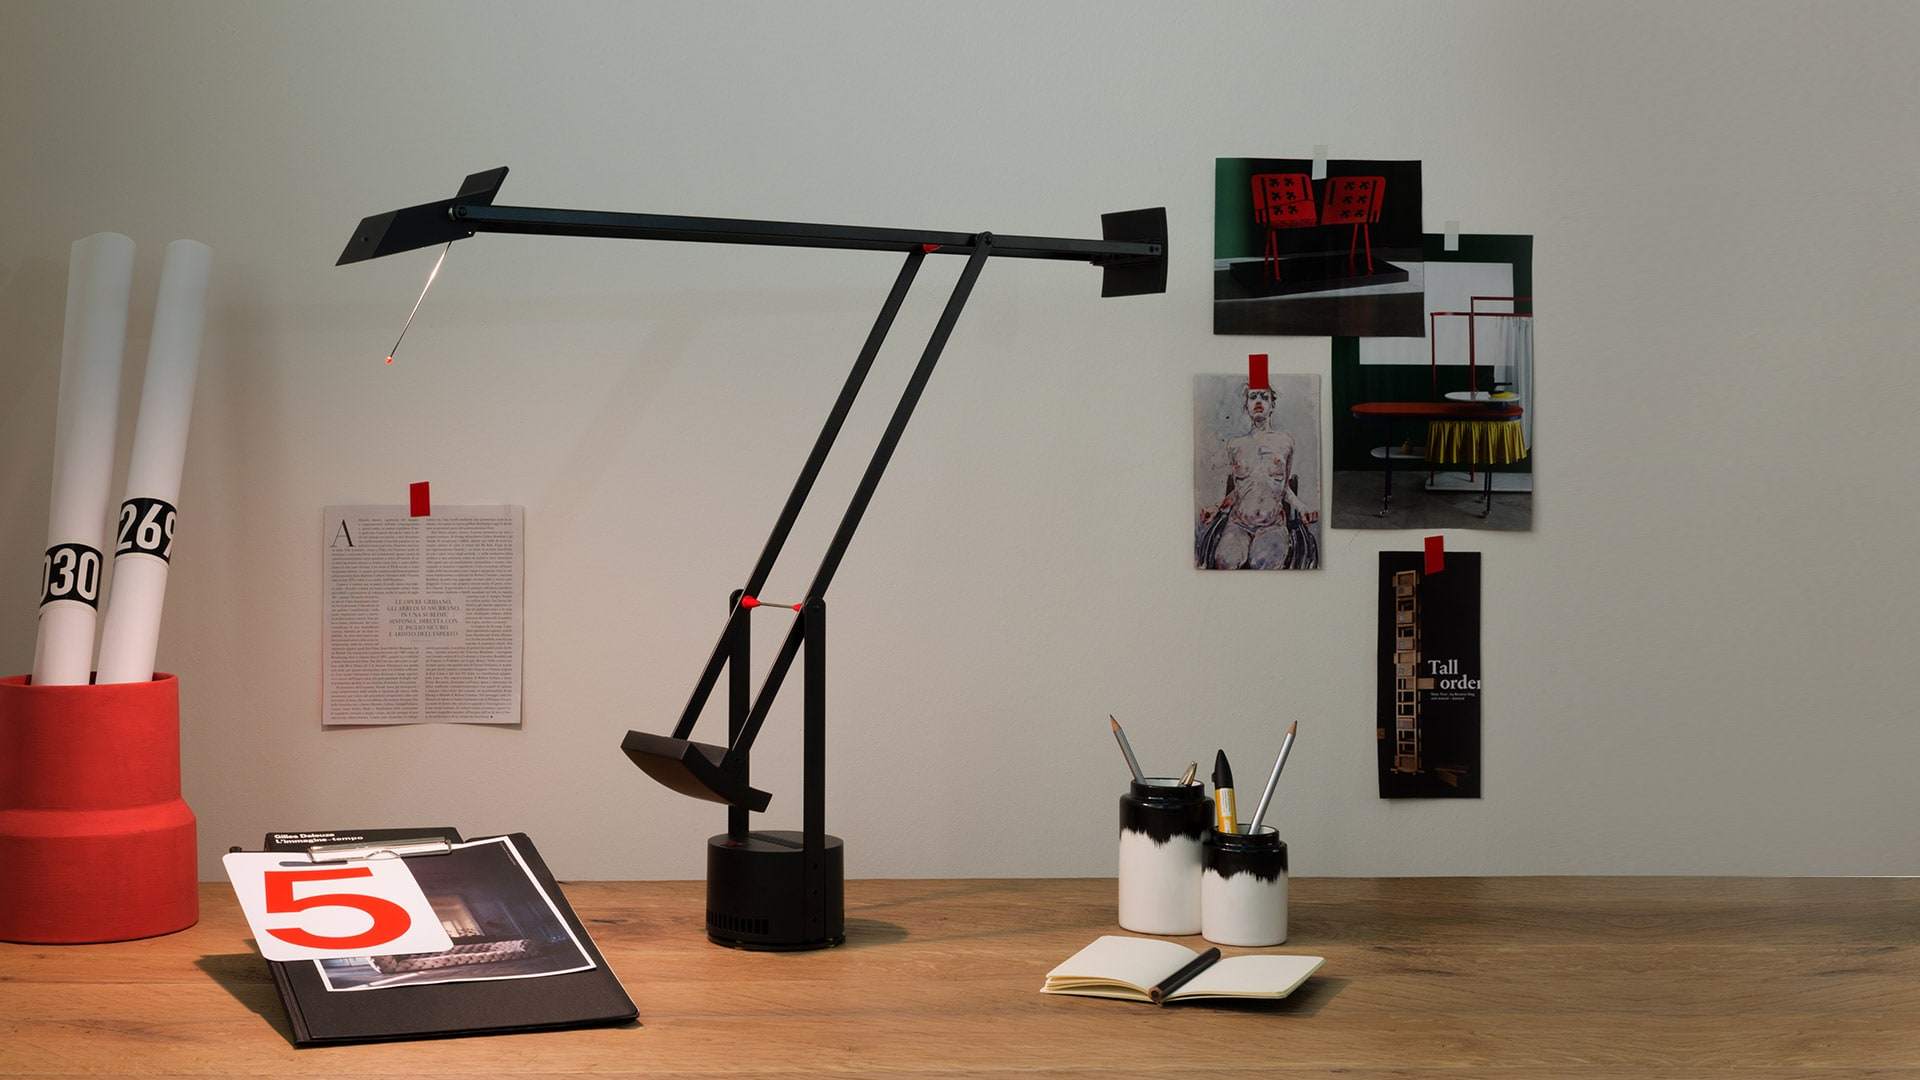 Design lamps from Italy